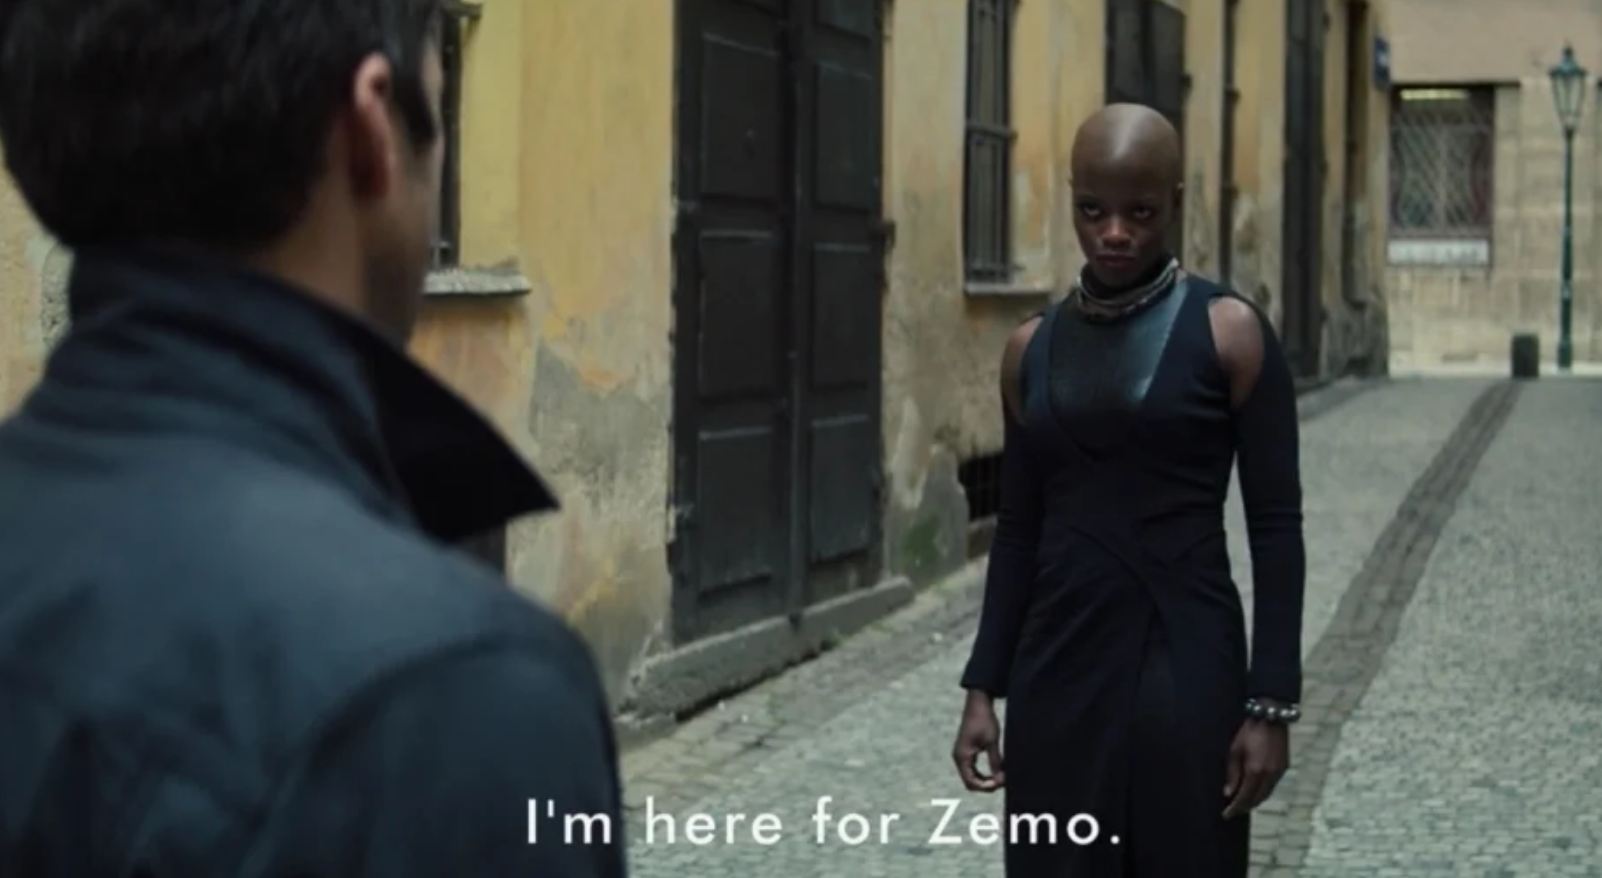 Ayo I'm here for Zemo